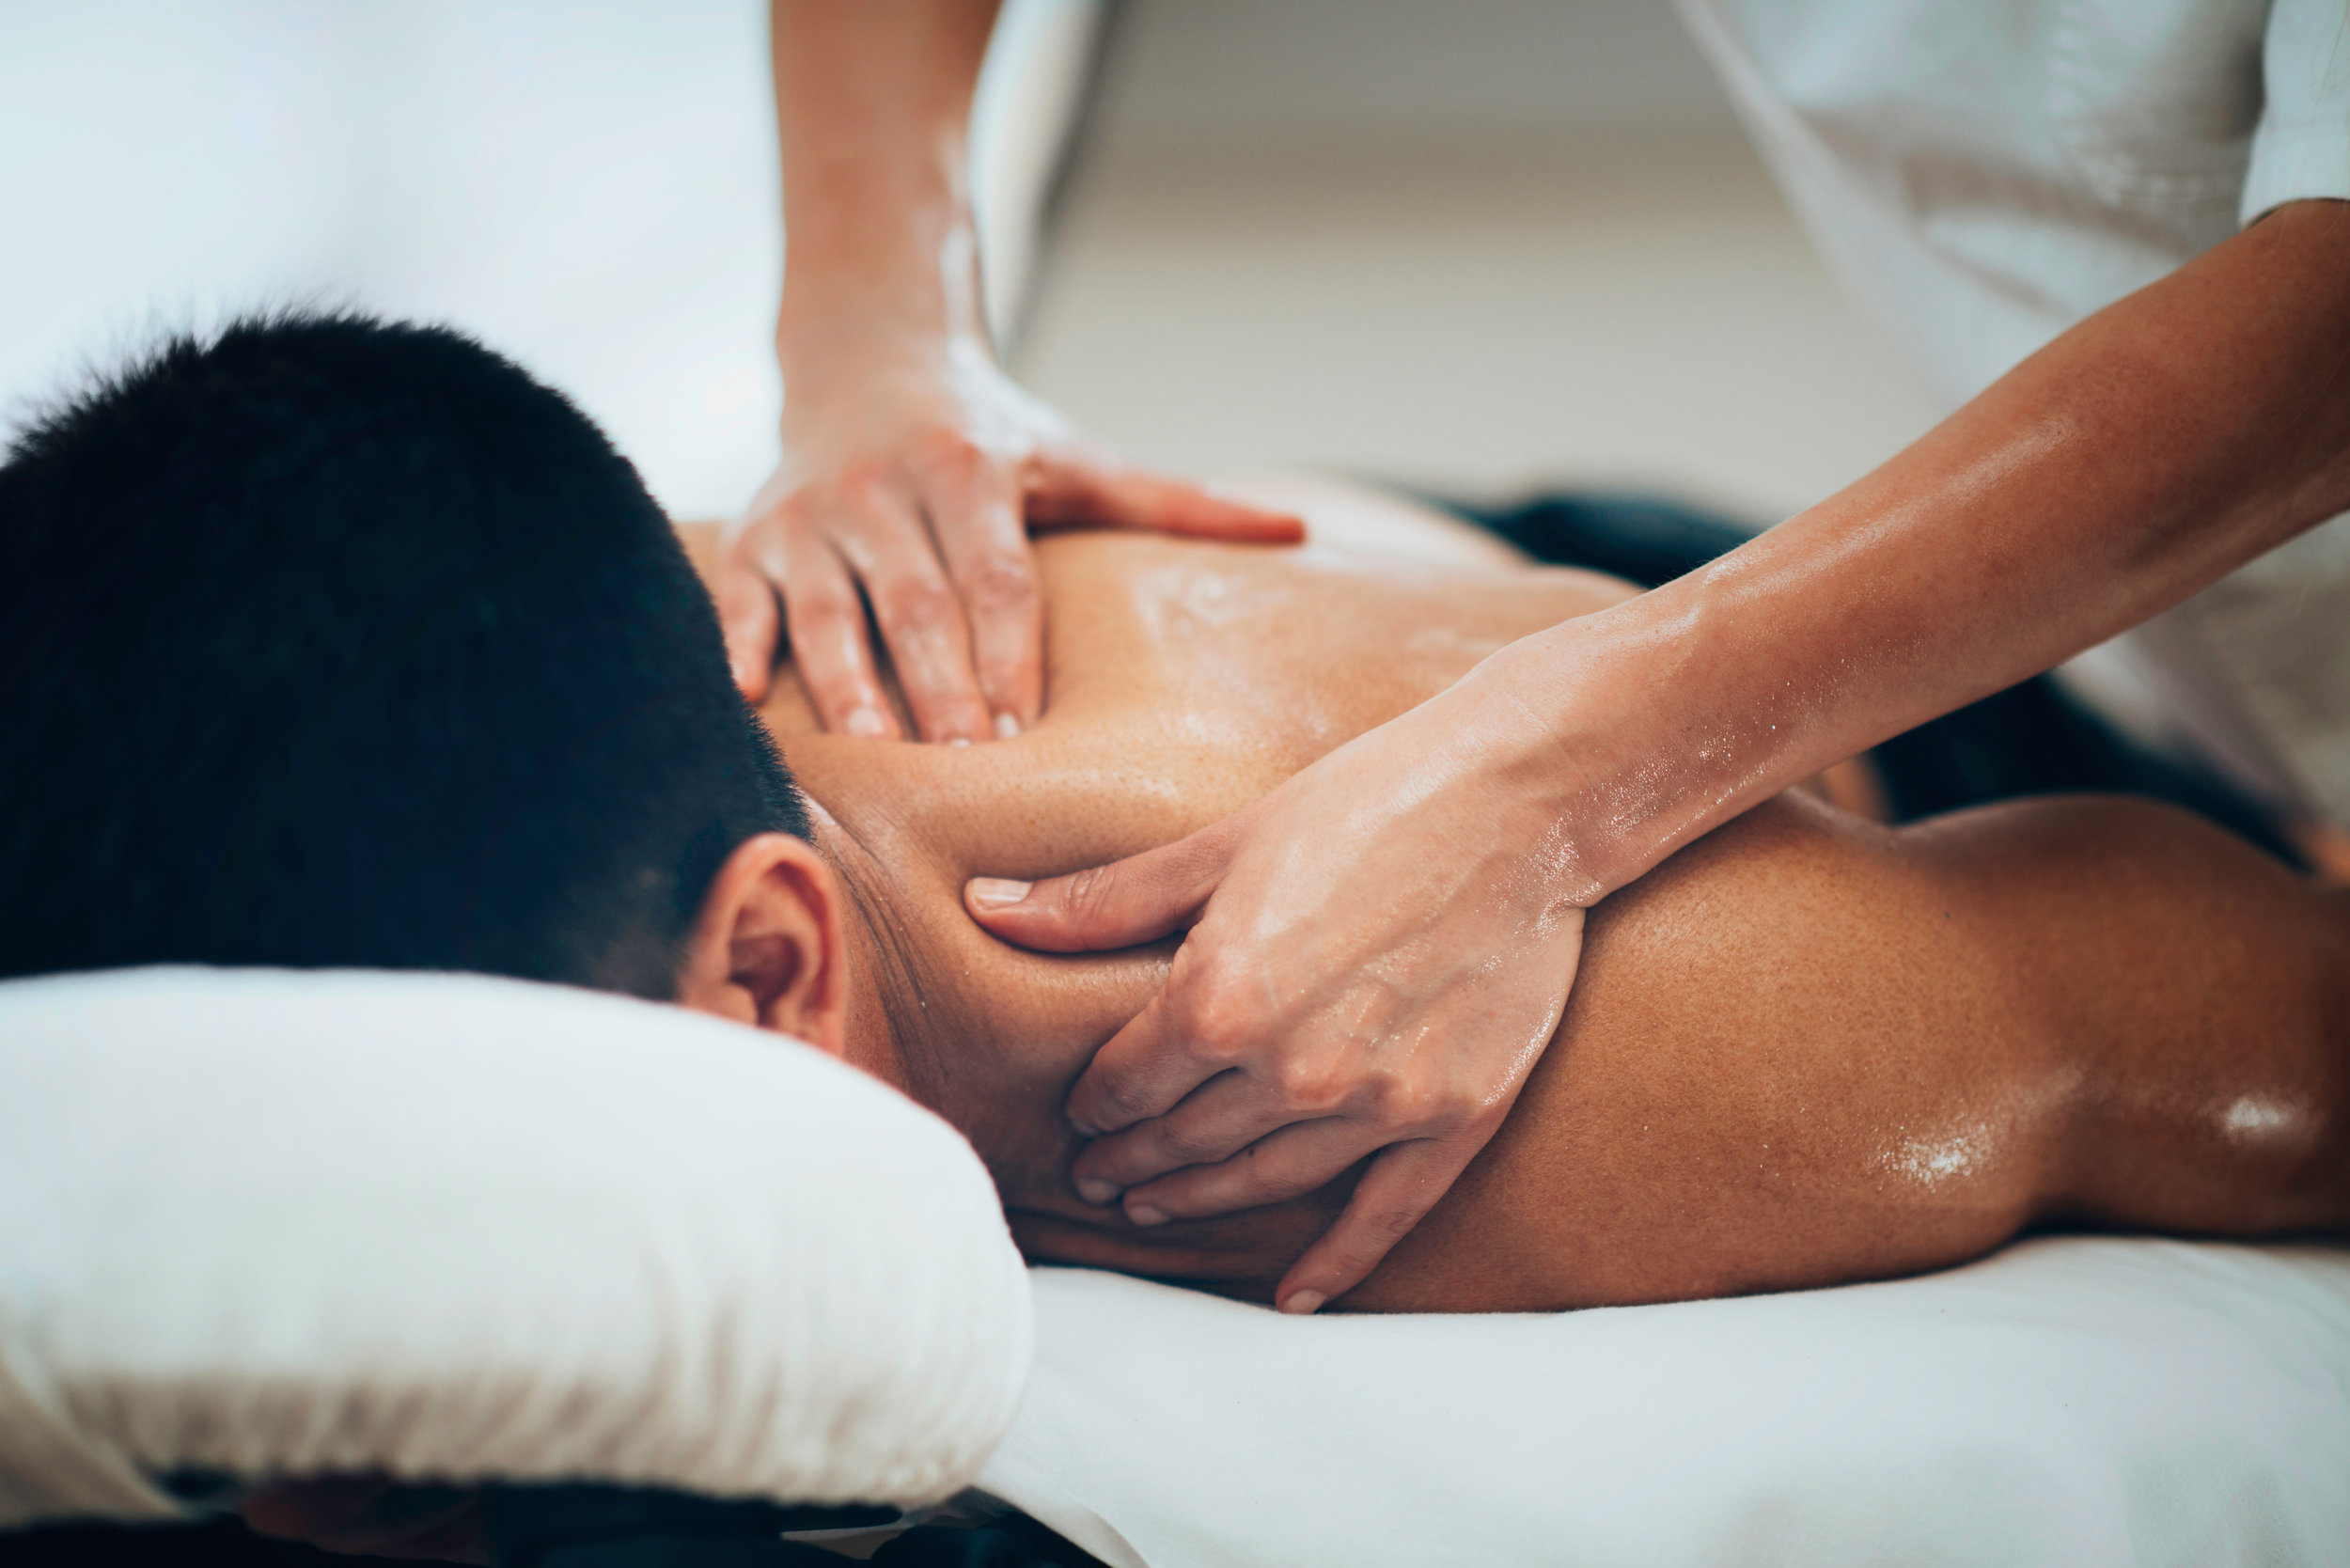 Massage Etiquette -                     Everything you need to know when coming in for massage therapy. Bodywork Etiquette: Guidelines To Help You Get The Most Out Of Your Session